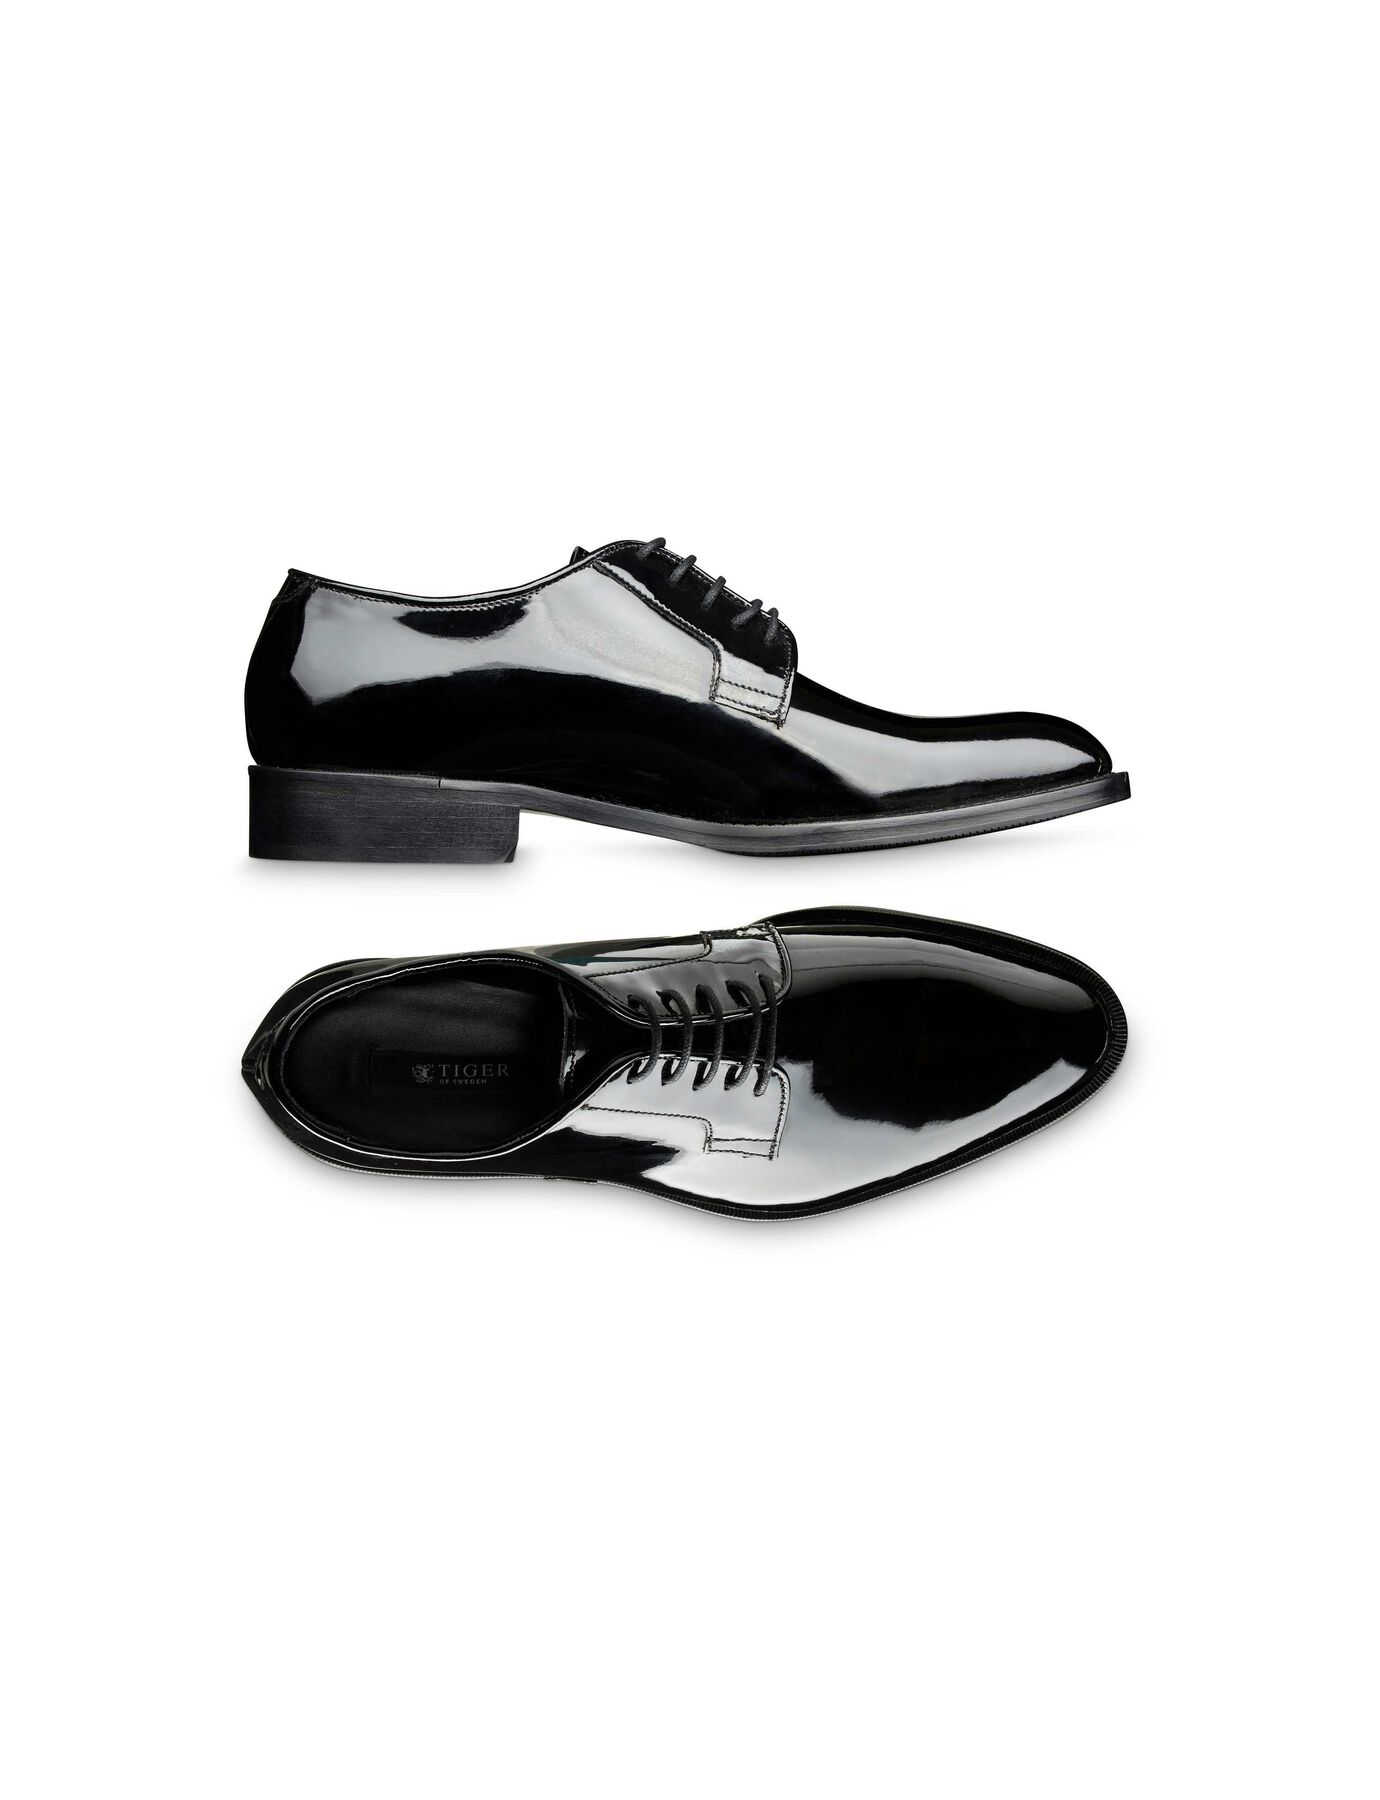 Agaton shoe in Black Shine from Tiger of Sweden